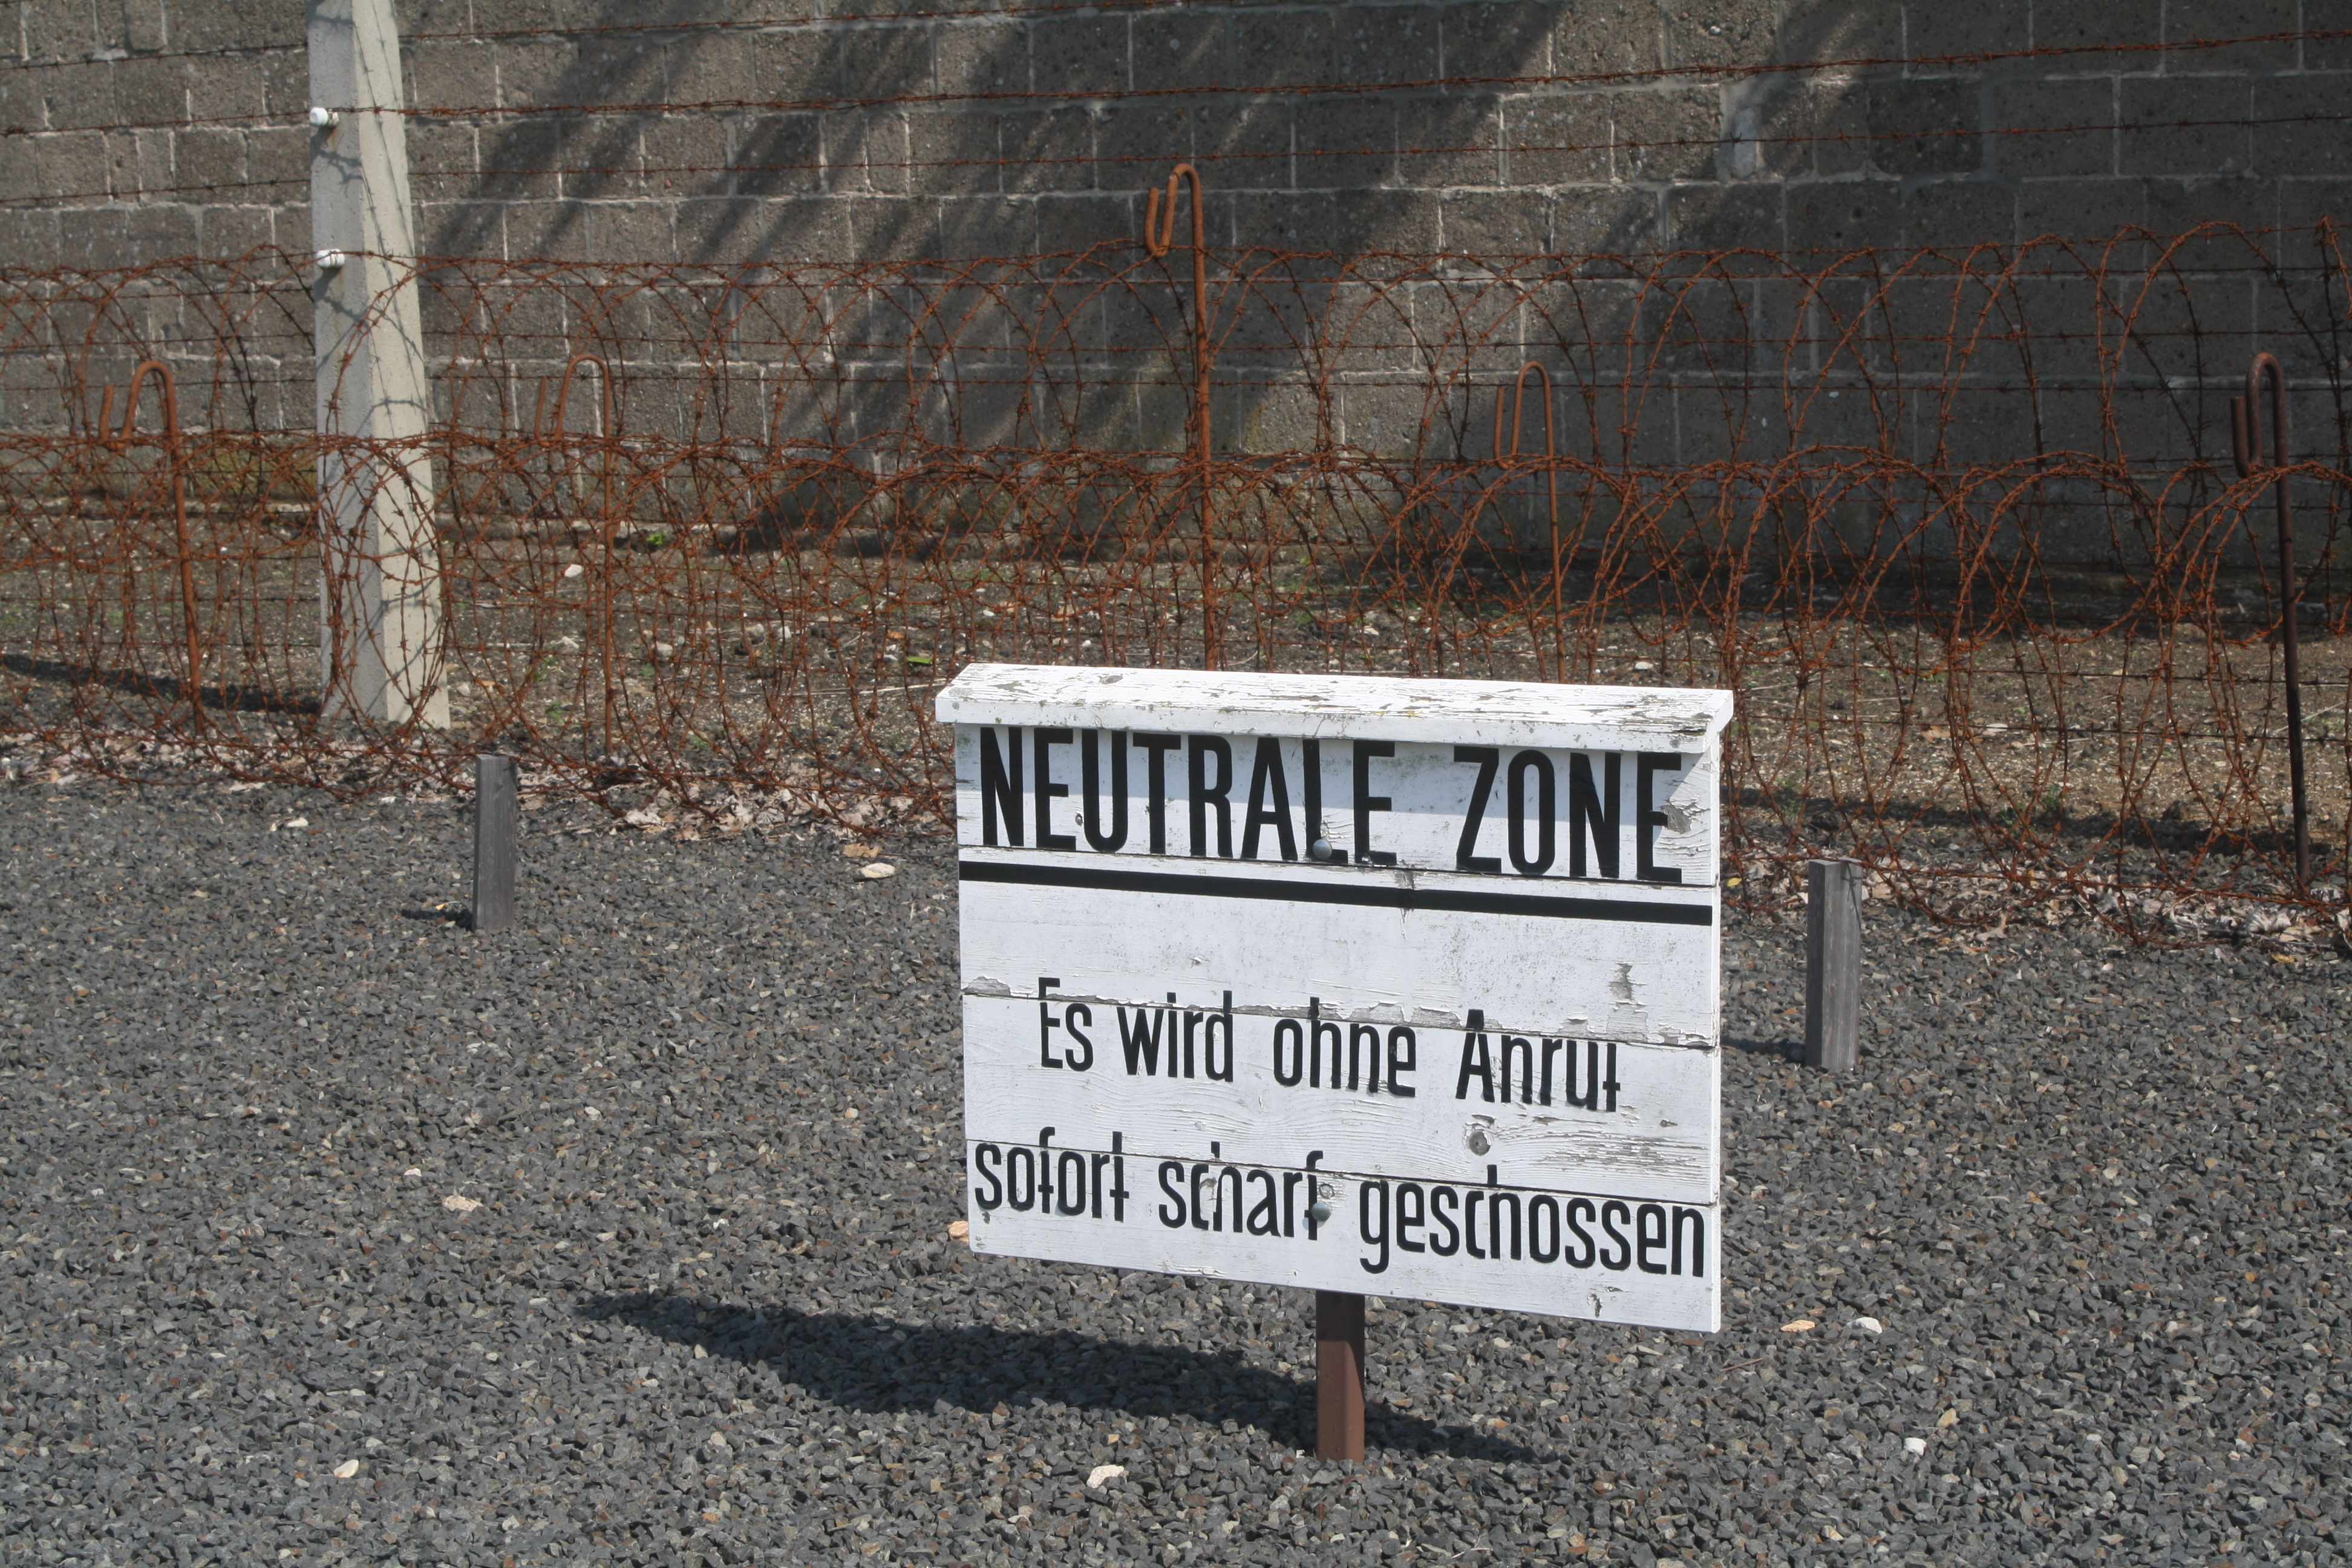 sachsenhausen concentration camp neutrale zone